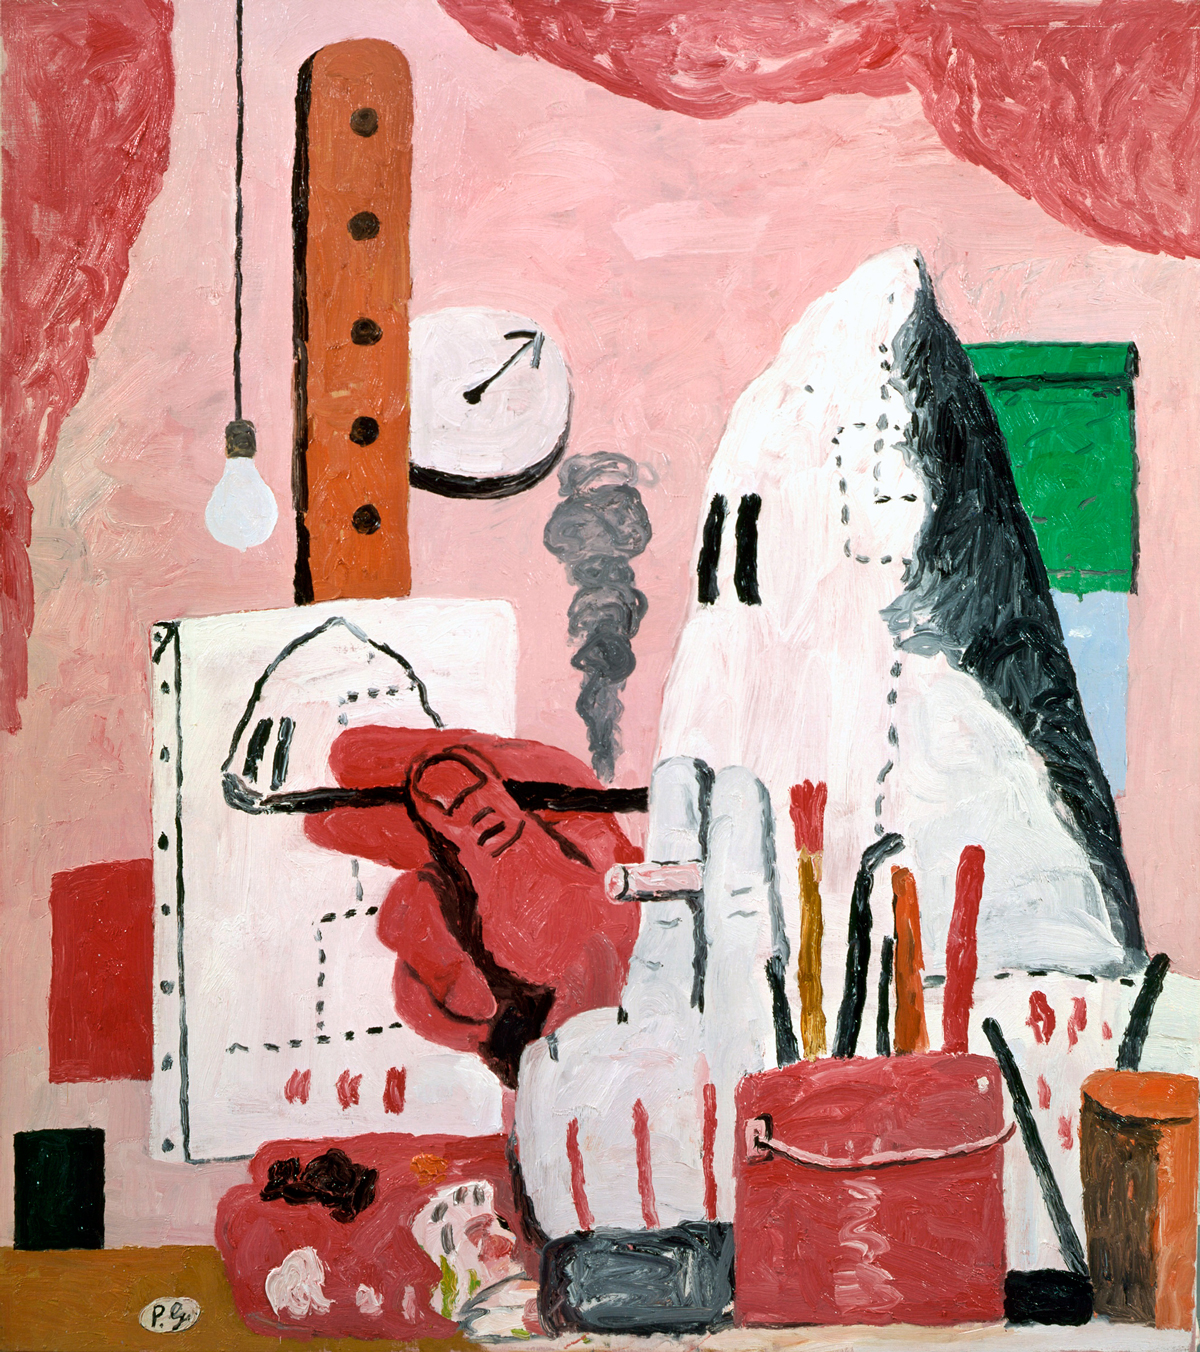 In the Studio (1969) by Philip Guston. As reproduced in Painting Beyond Pollock